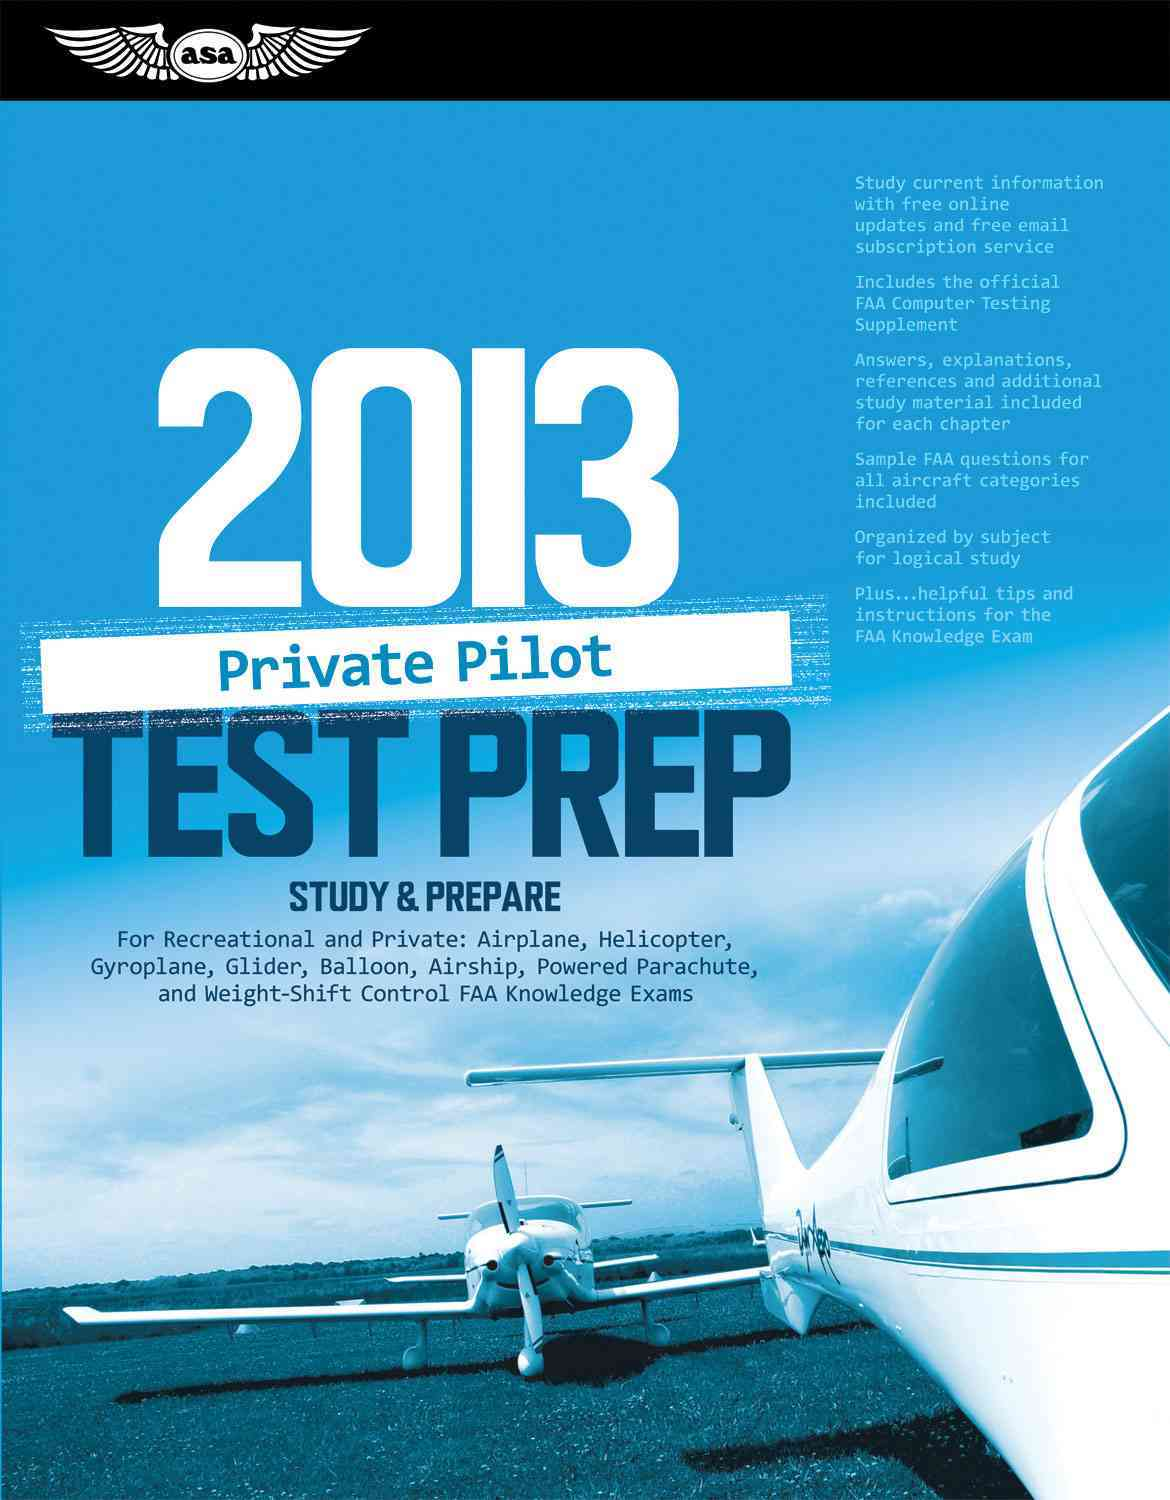 Private Pilot Test Prep 2013: Study & Prepare for Recreational and Private: Airplane, Helicopter, Gyroplane, Glider, Balloon,...